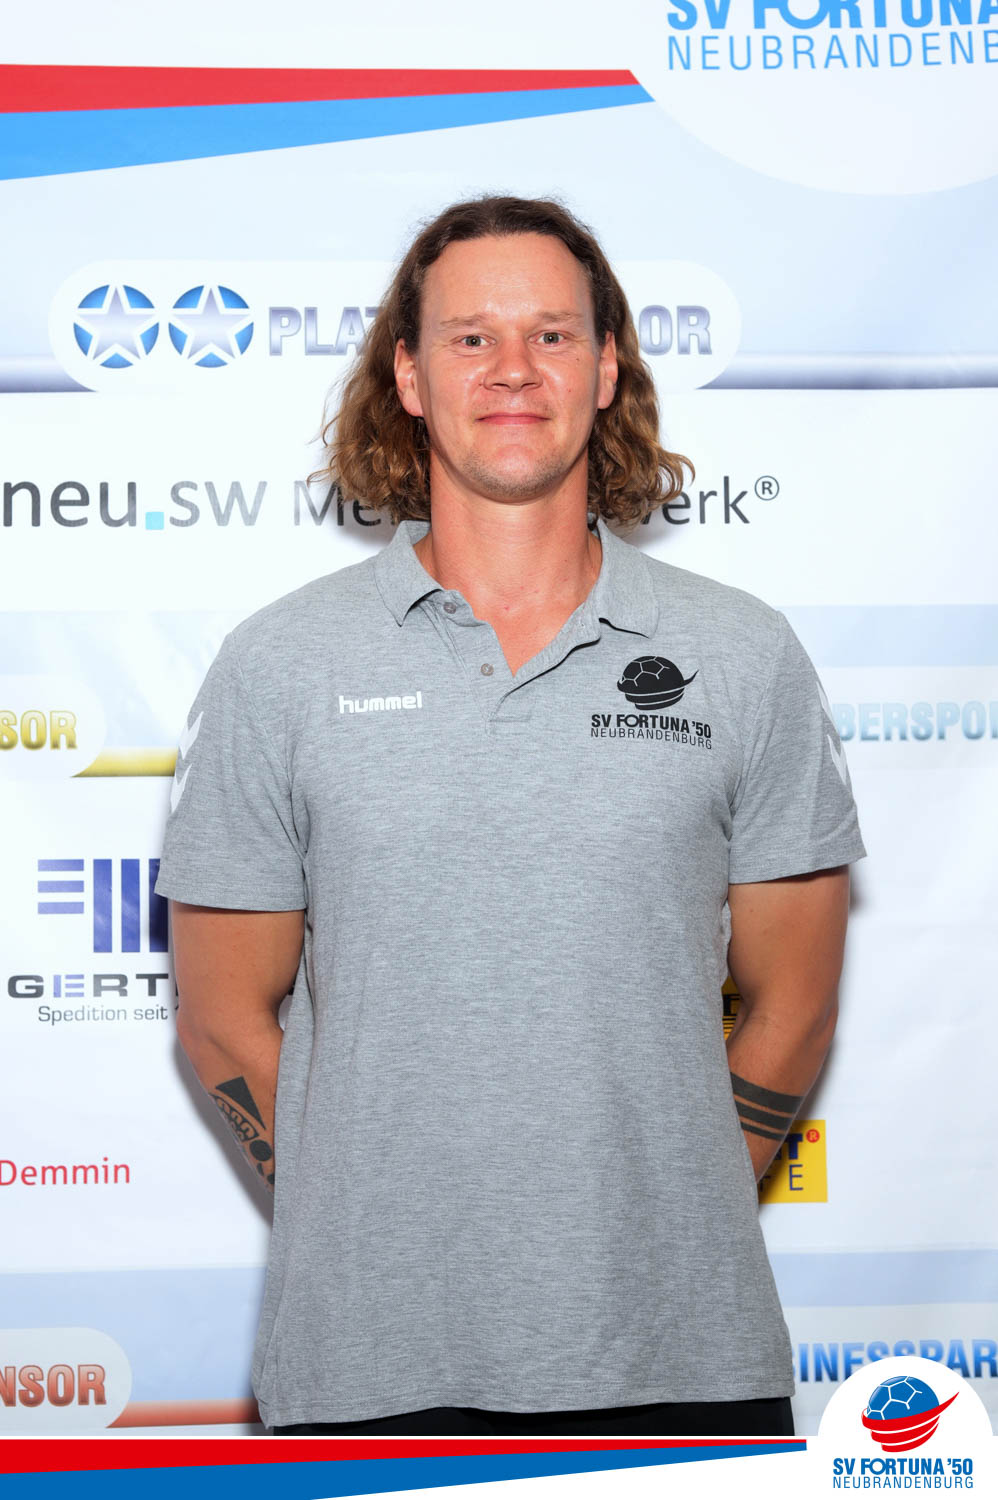 Co-Trainer Stefan Köpke